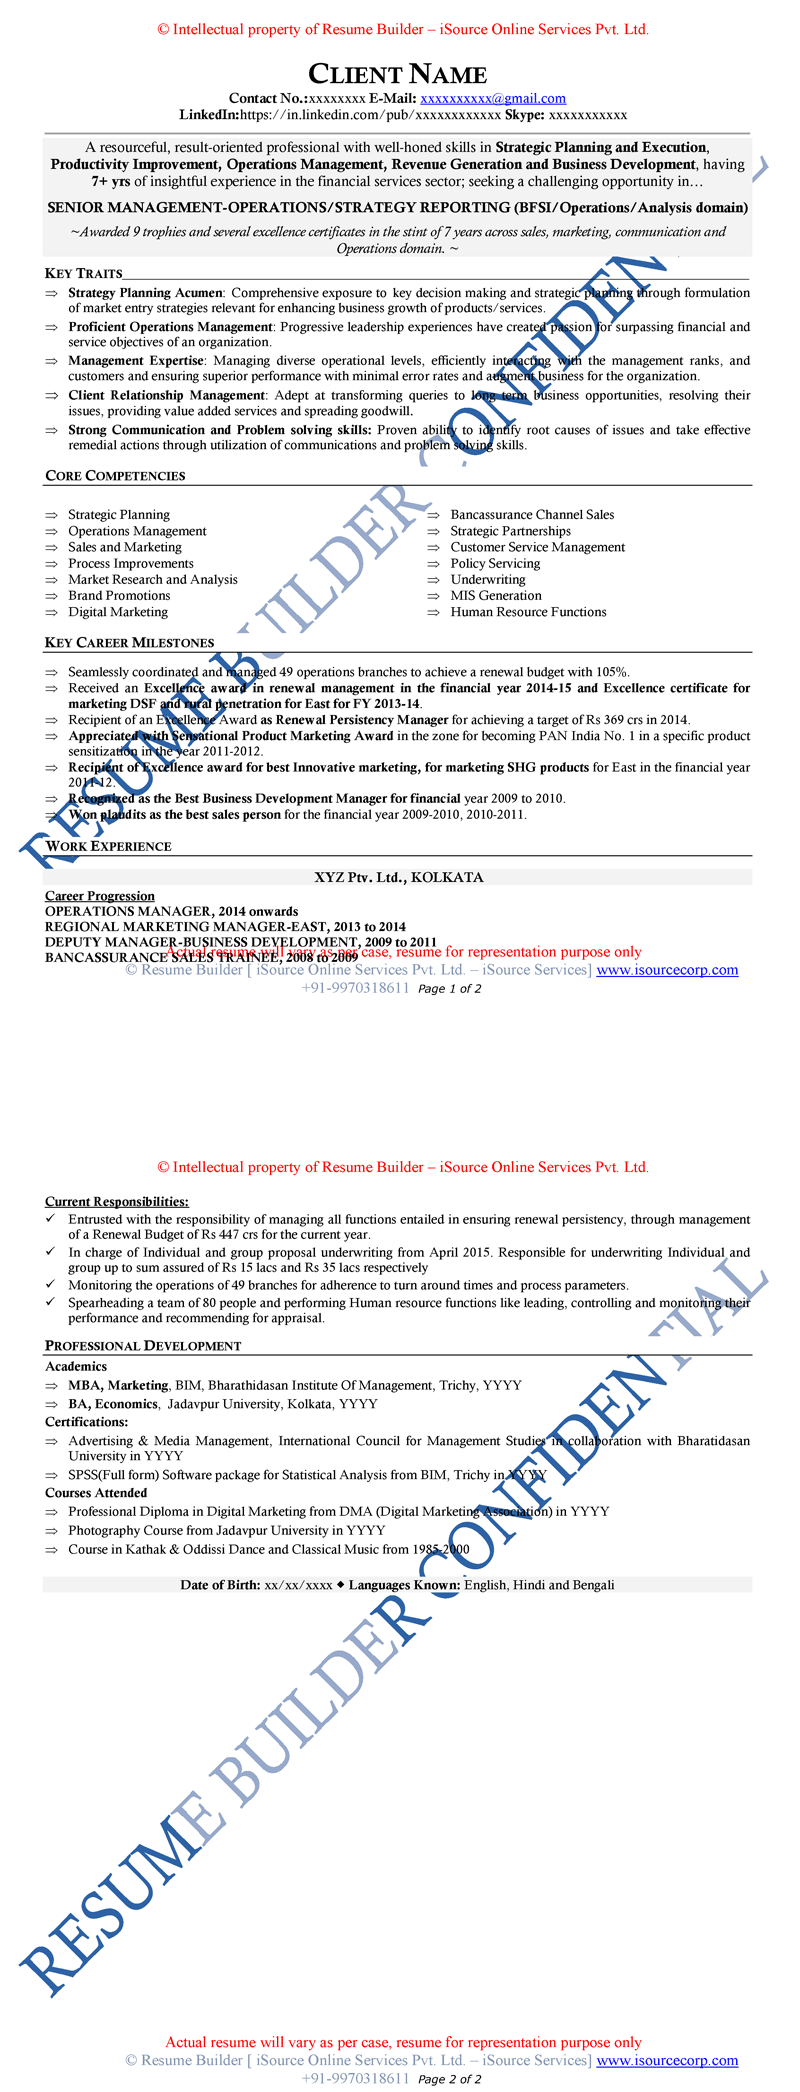 Executive Resume, LinkedIn & Cover Letter writing, Visual CV, CEO ...